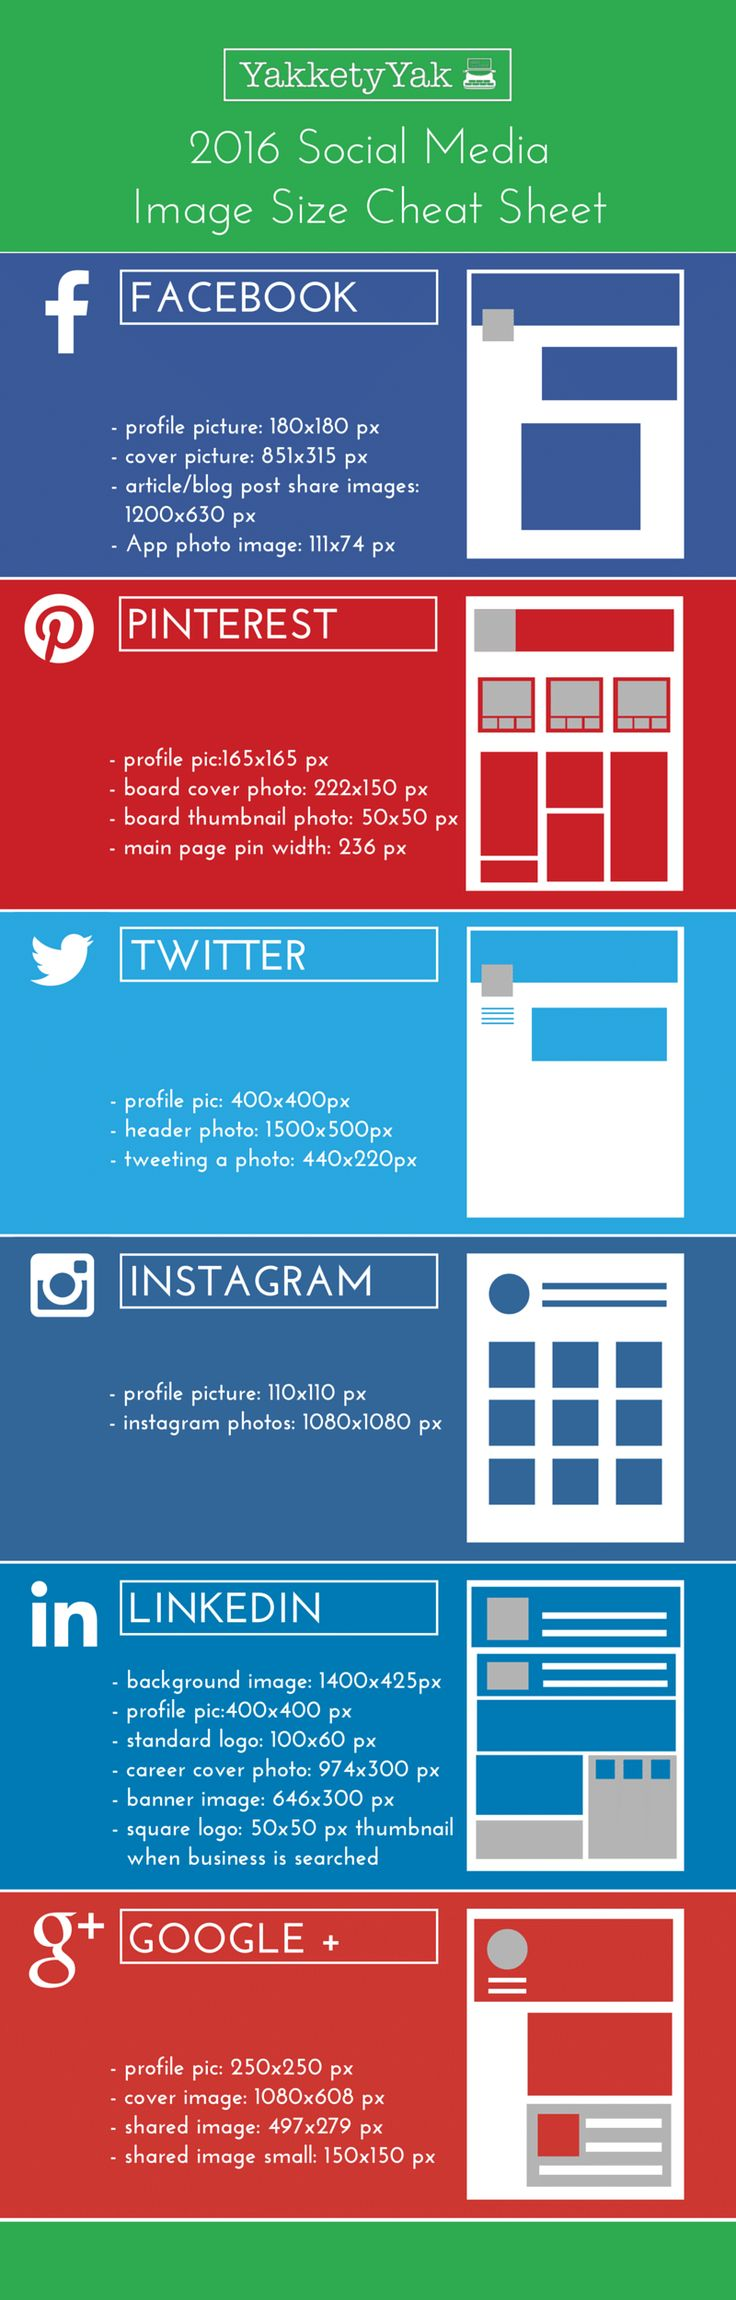 25+ Best Ideas about Facebook Cover Image Size on Pinterest ...